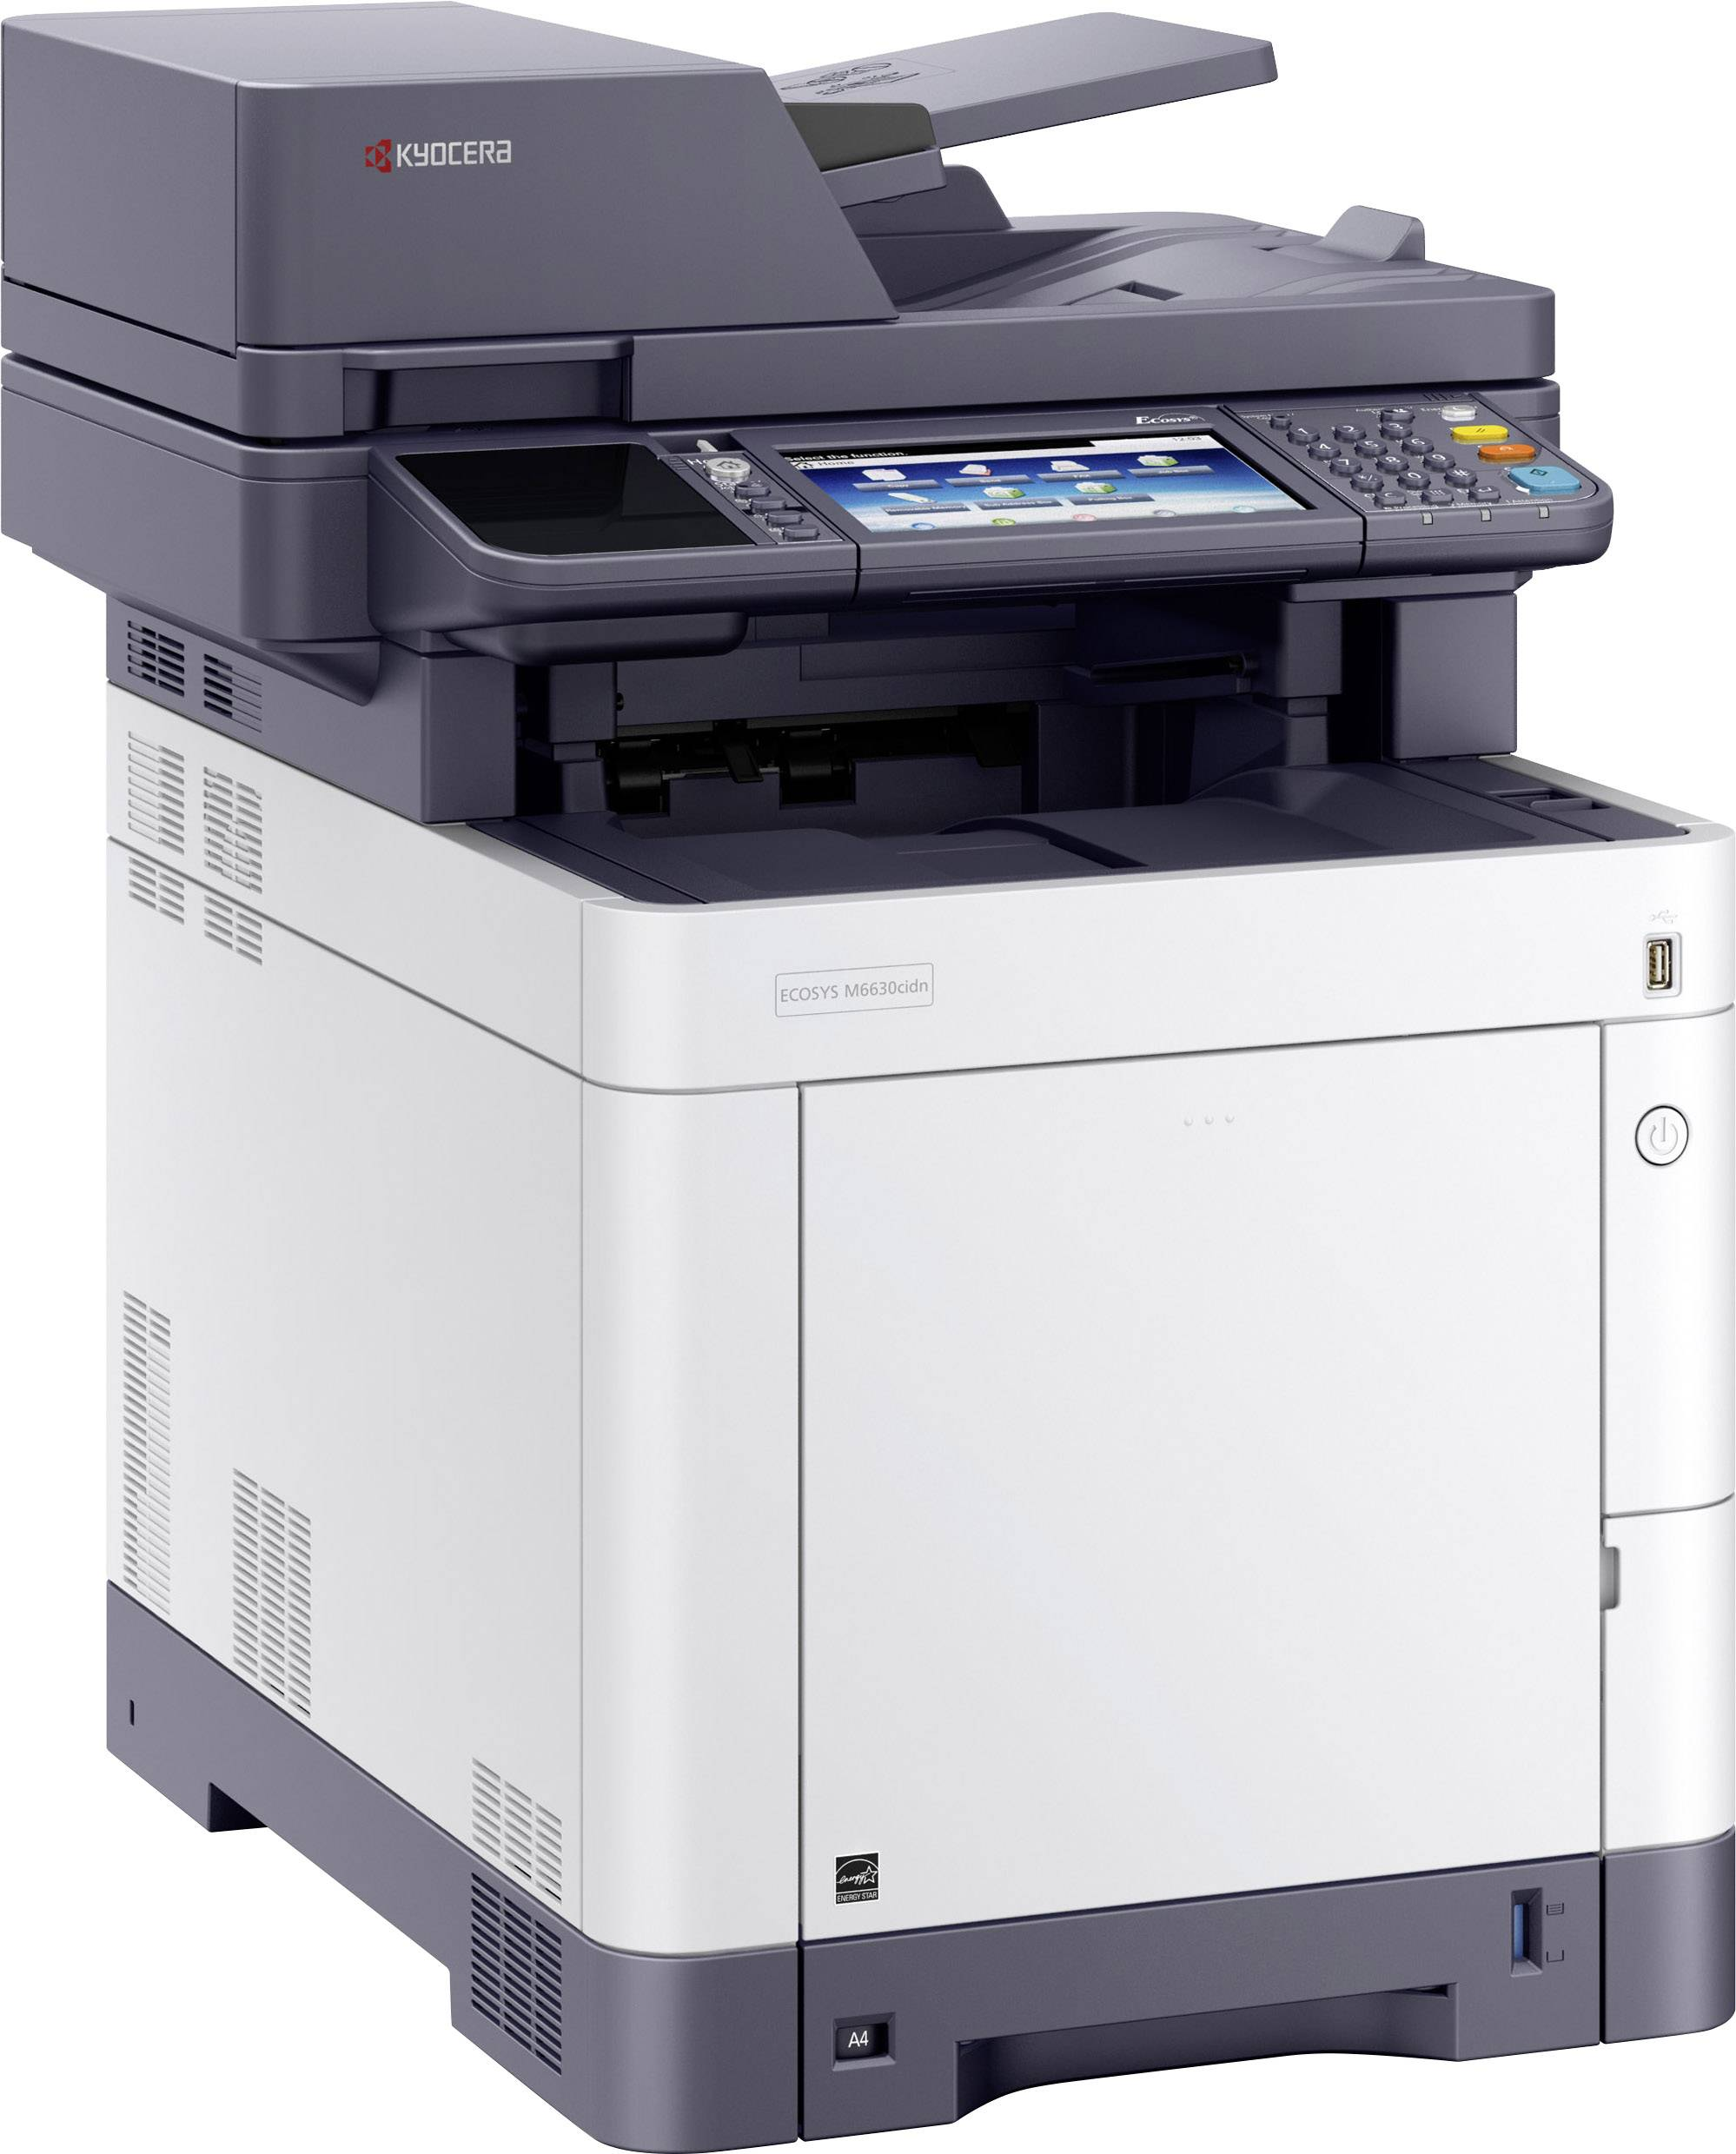 Kyocera ECOSYS M6630cidn Colour laser multifunction printer